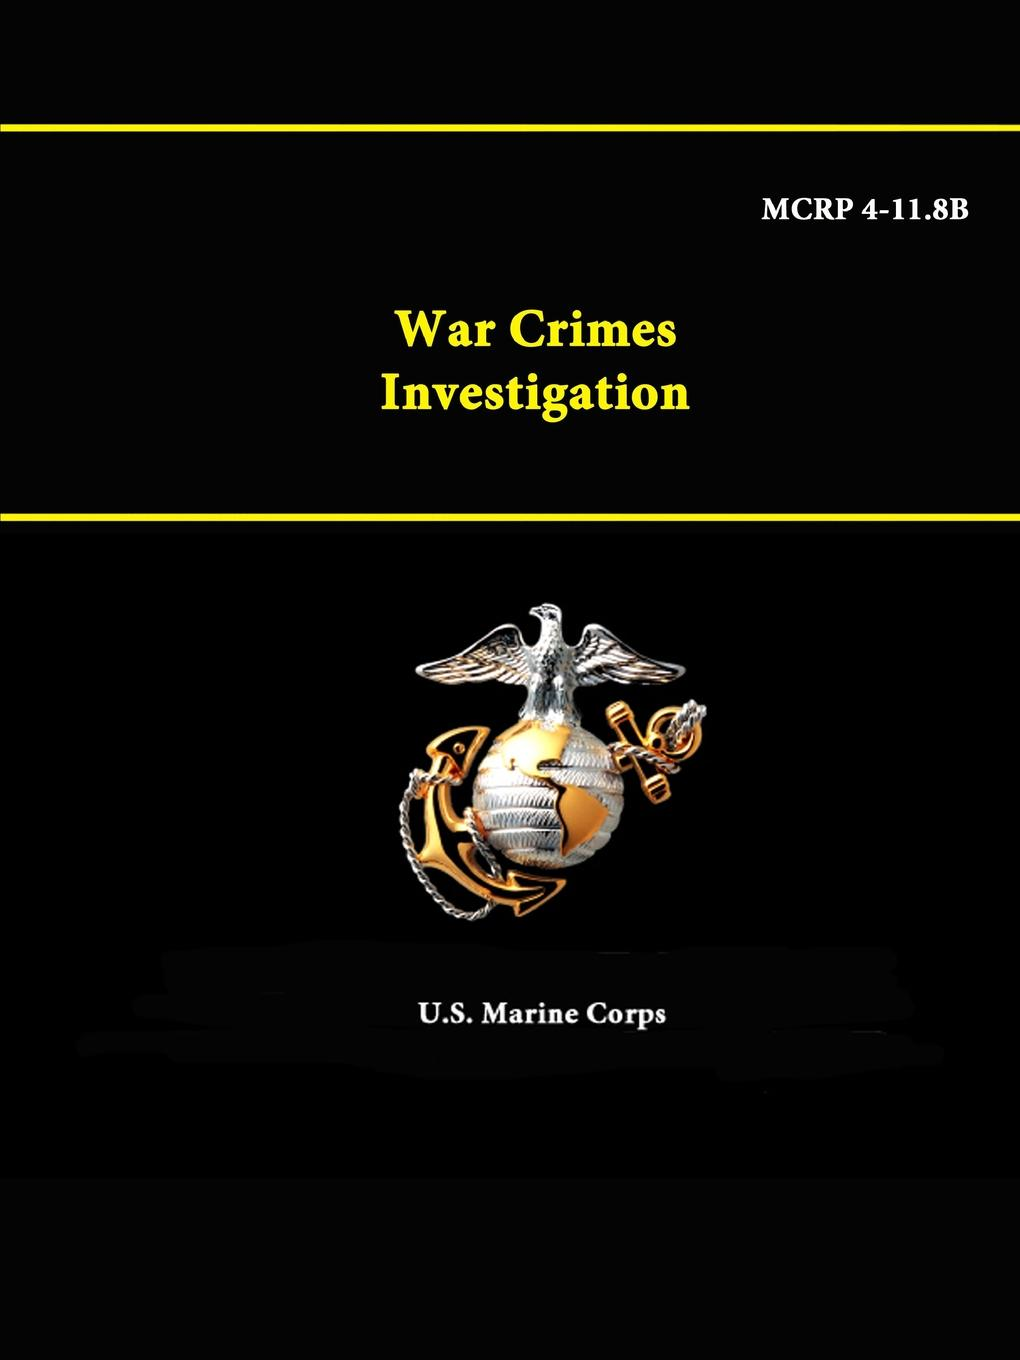 U.S. Marine Corps War Crimes Investigation - MCRP 4-11.8B an investigation into the generic structure of acknowledgments